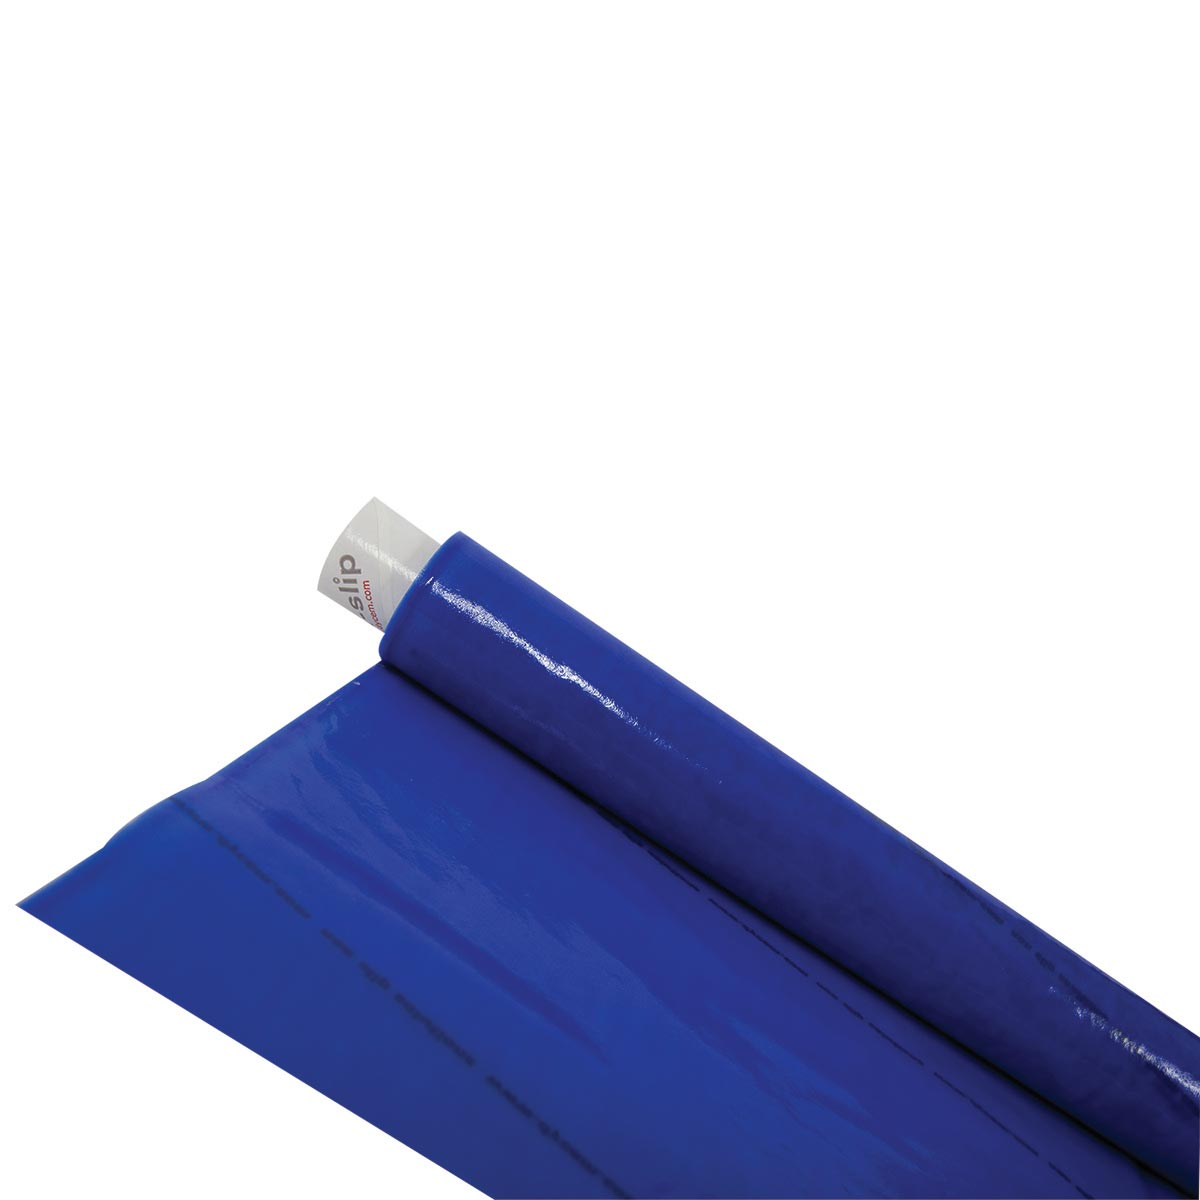 Dycem Non-Slip Self-Adhesive Material Roll